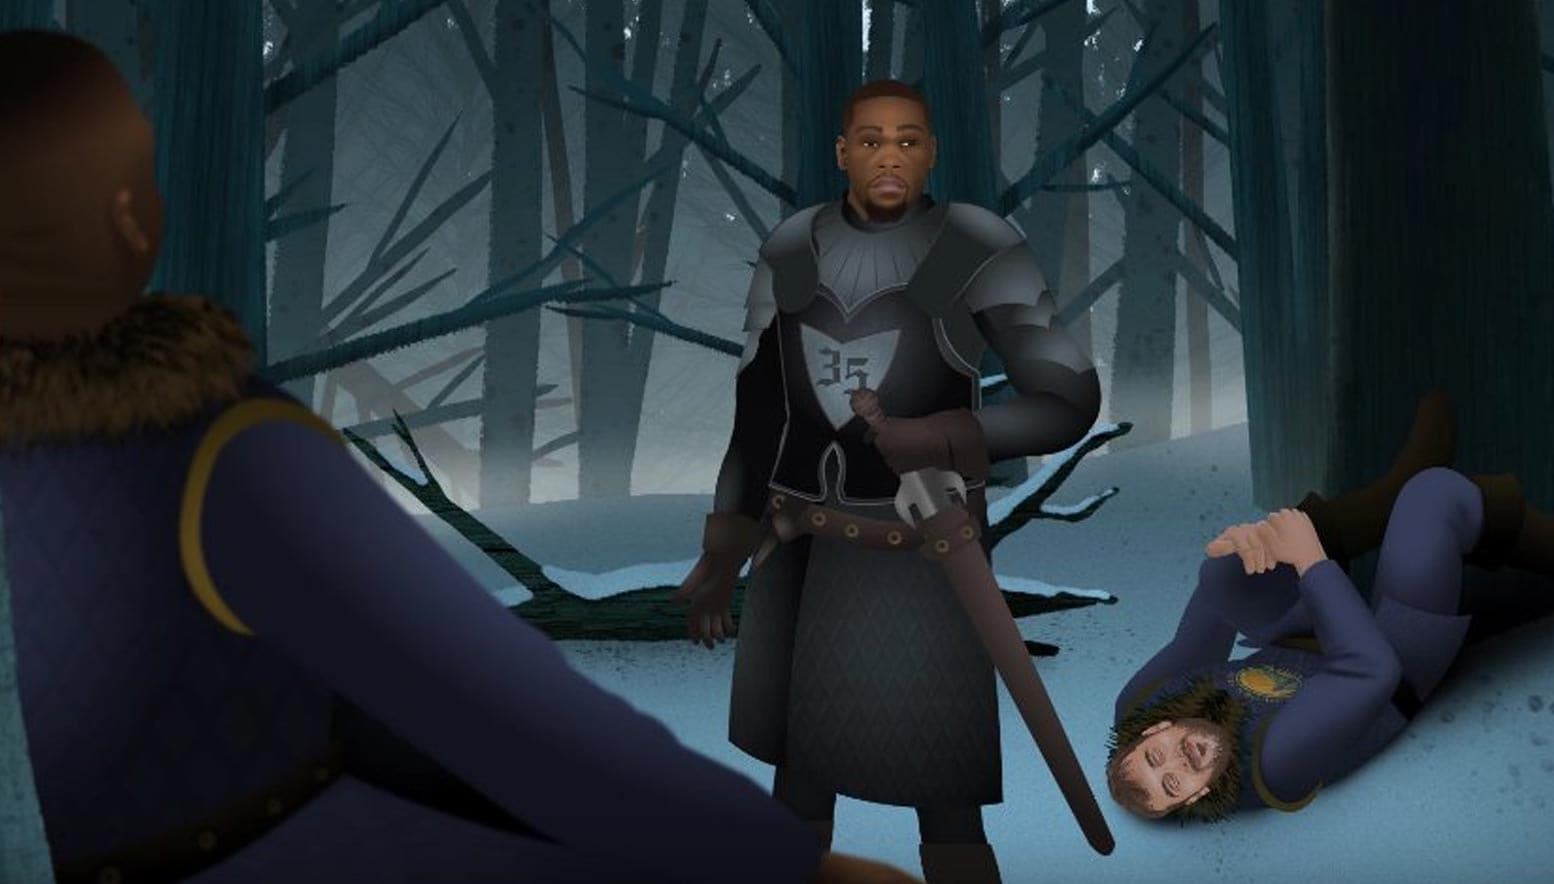 Kevin Durant featured in Game of Zones